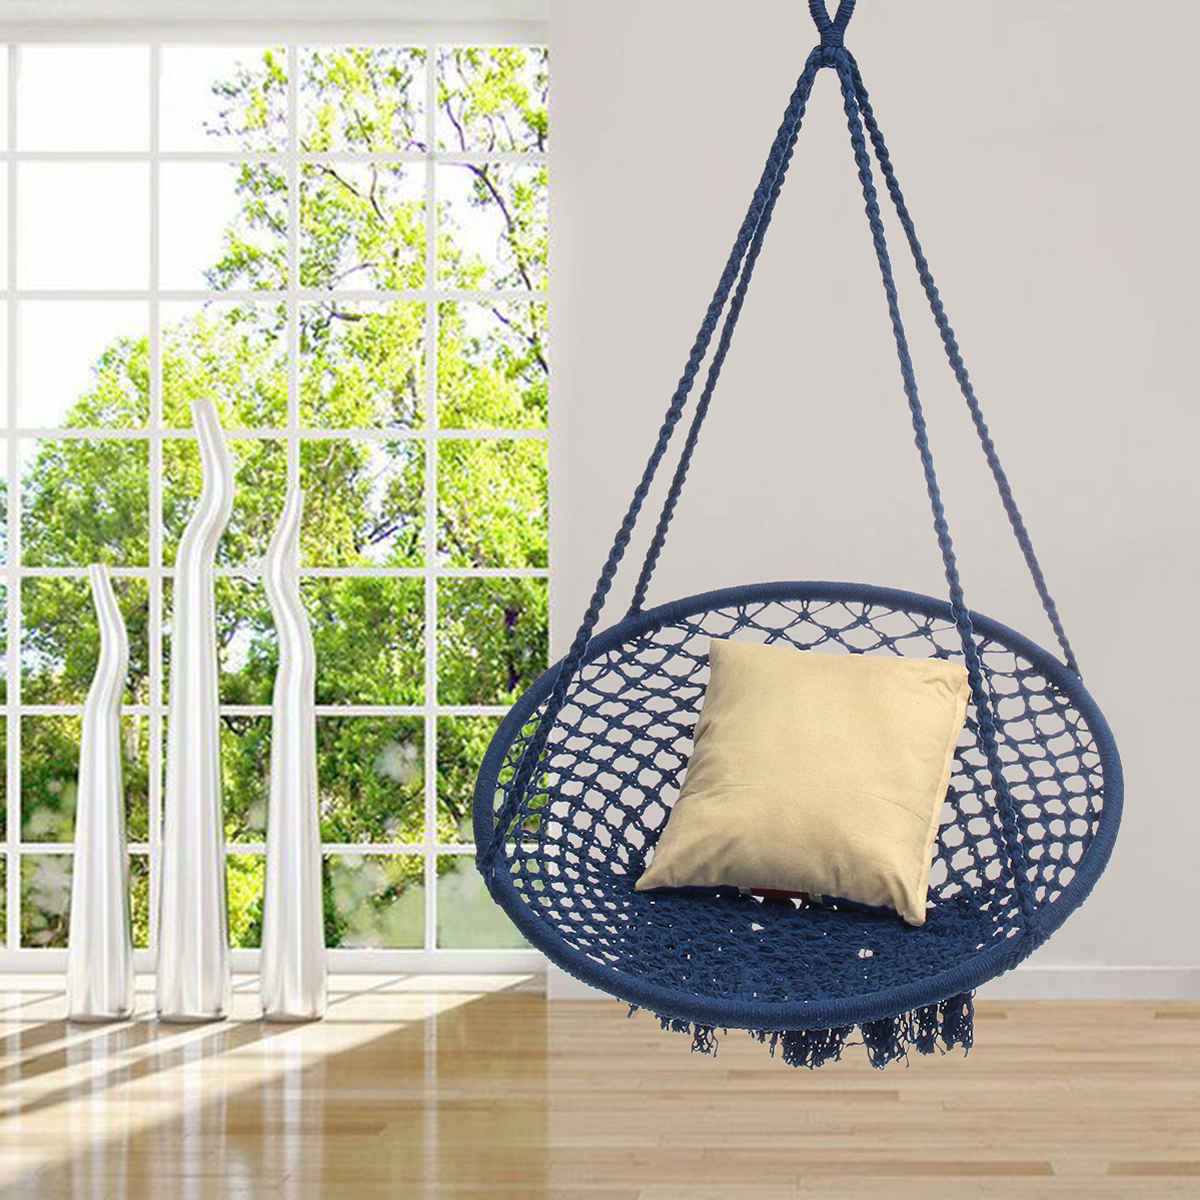 Nordic Style Mesh Hammock Outdoor Indoor Country Hammock Chair For Dormitory Bedroom Hammock Chair Safety Swing Hanging breathable ice mesh individual lifts chair outdoor swing mesh hammock strong and safety portable casual lightweight lifts chair